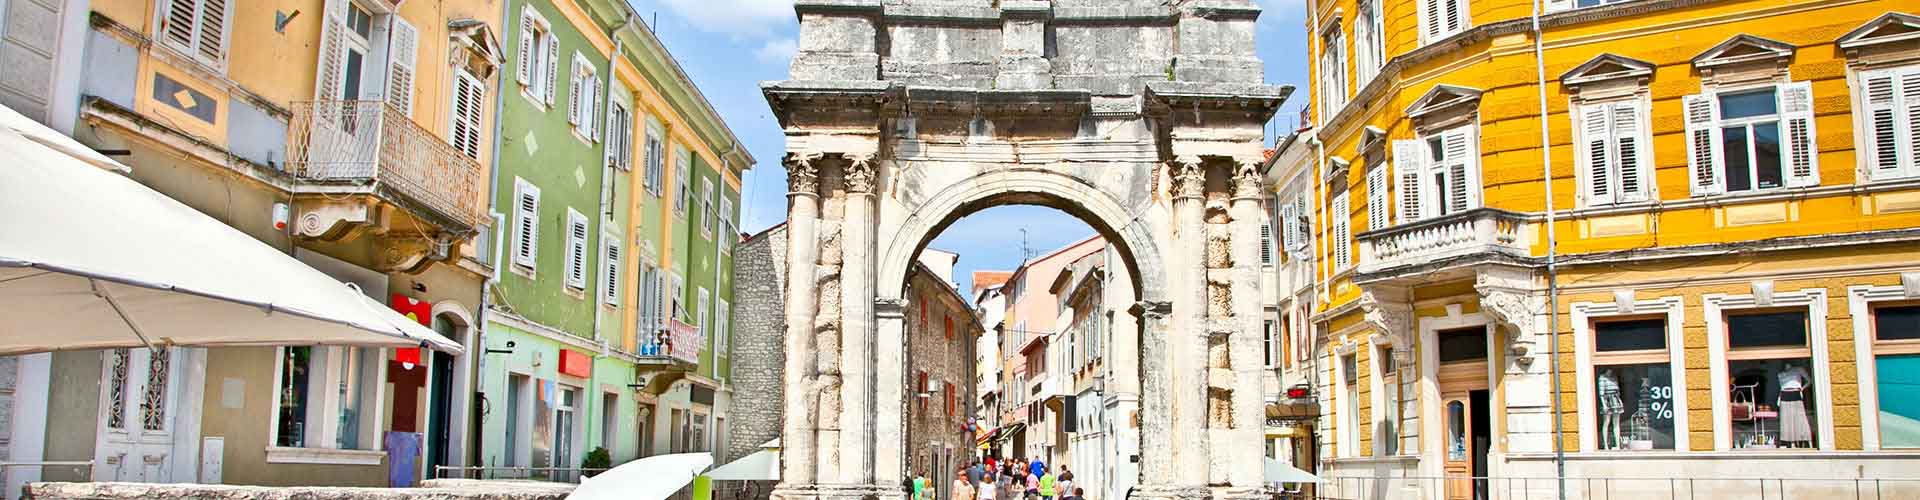 Pula – Hostels in Pula. Maps for Pula, Photos and Reviews for each hostel in Pula.